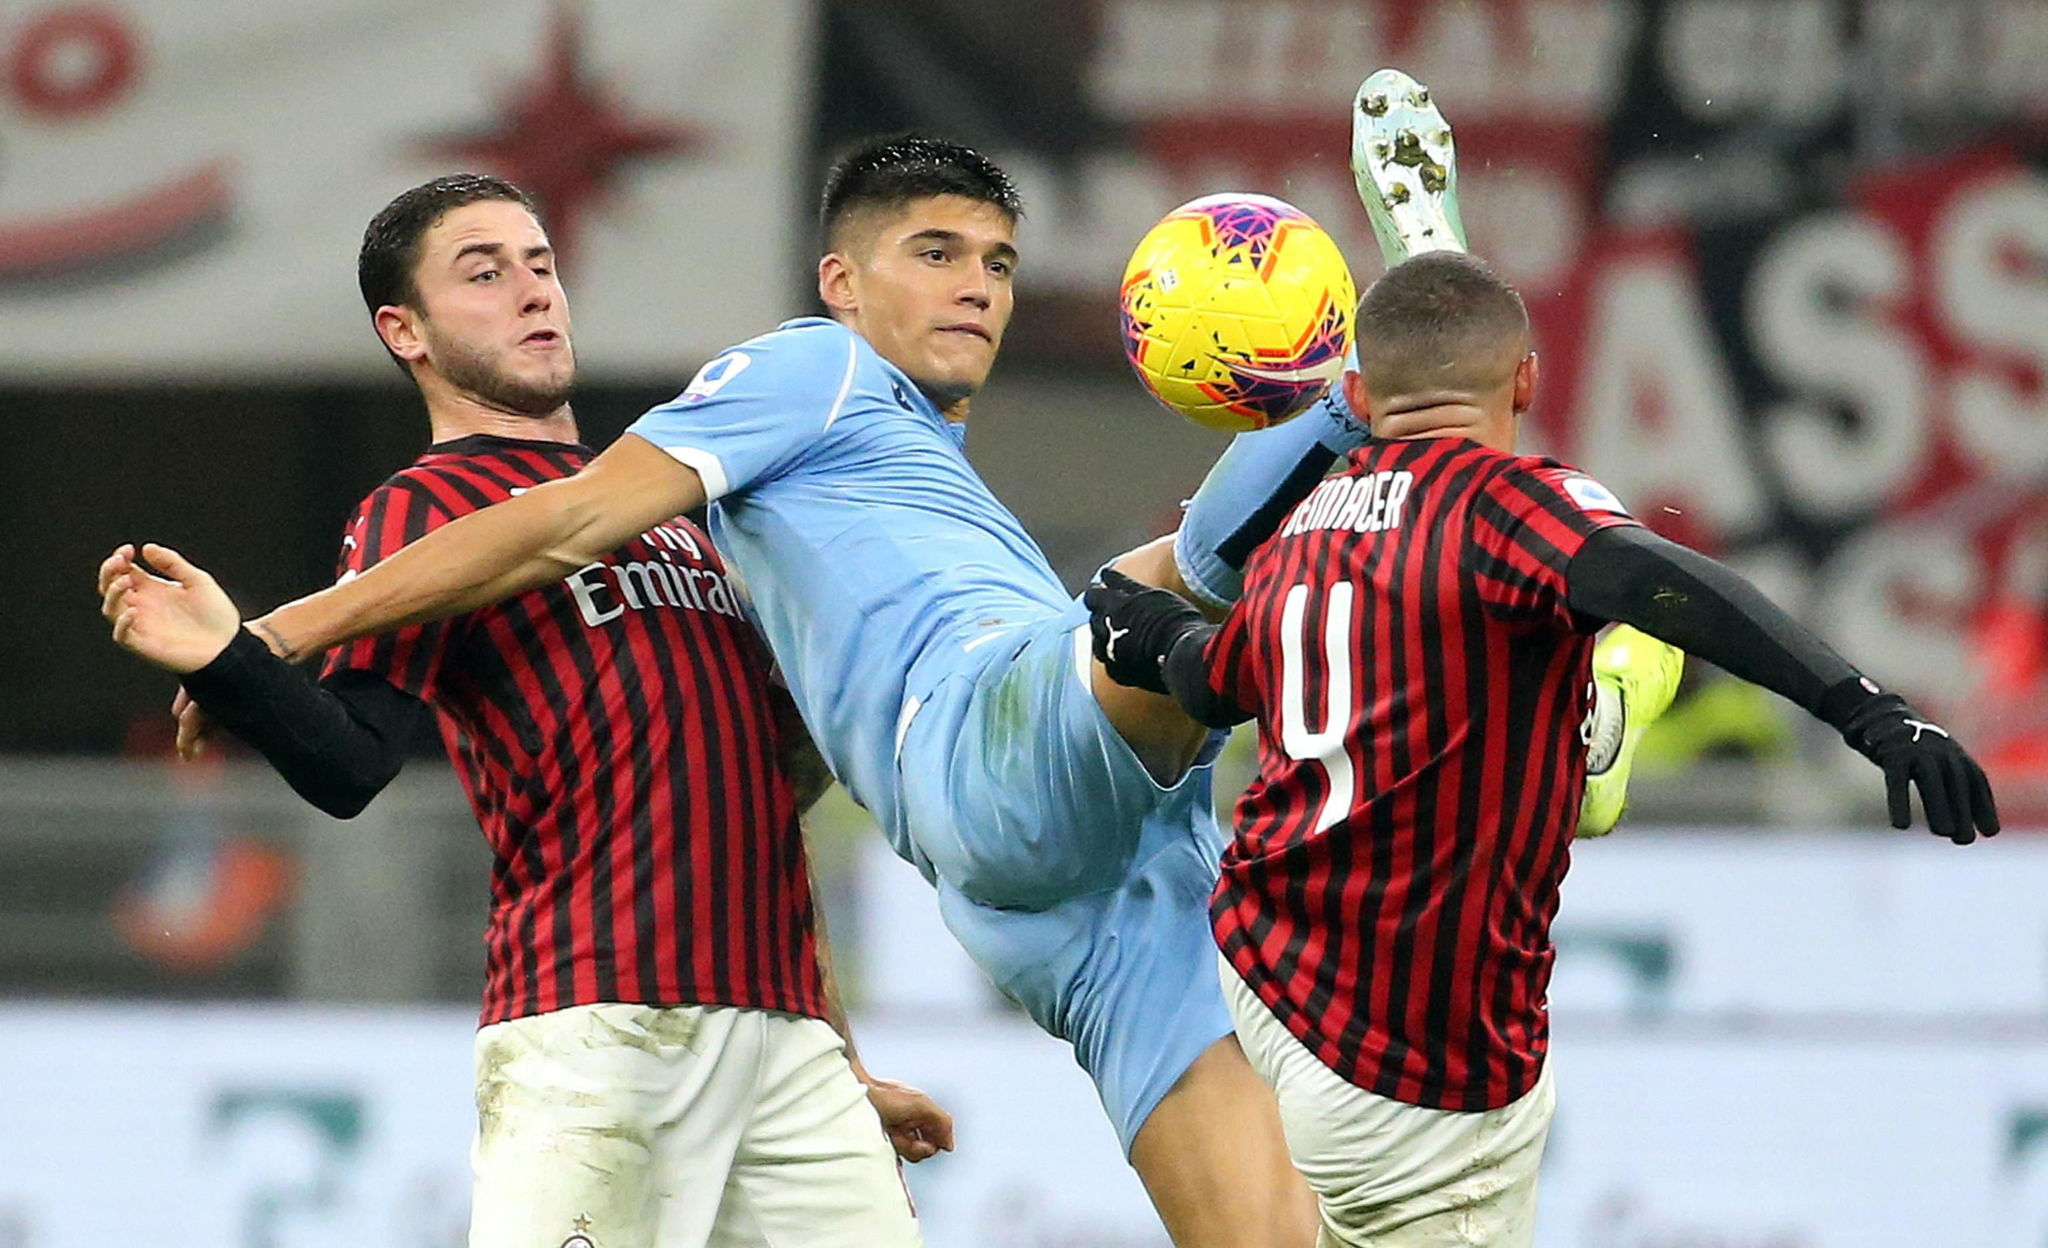 <HIT>Milan</HIT> (Italy), 03/11/2019.- Lazios Joaquin Correa (C) in action against AC <HIT>Milan</HIT>s Davide Calabria (L) and Ismael Bennacer during the Italian serie A soccer match between AC <HIT>Milan</HIT> and SS Lazio at Giuseppe Meazza stadium in <HIT>Milan</HIT>, Italy, 03 November 2019. (Italia) EFE/EPA/MATTEO BAZZI